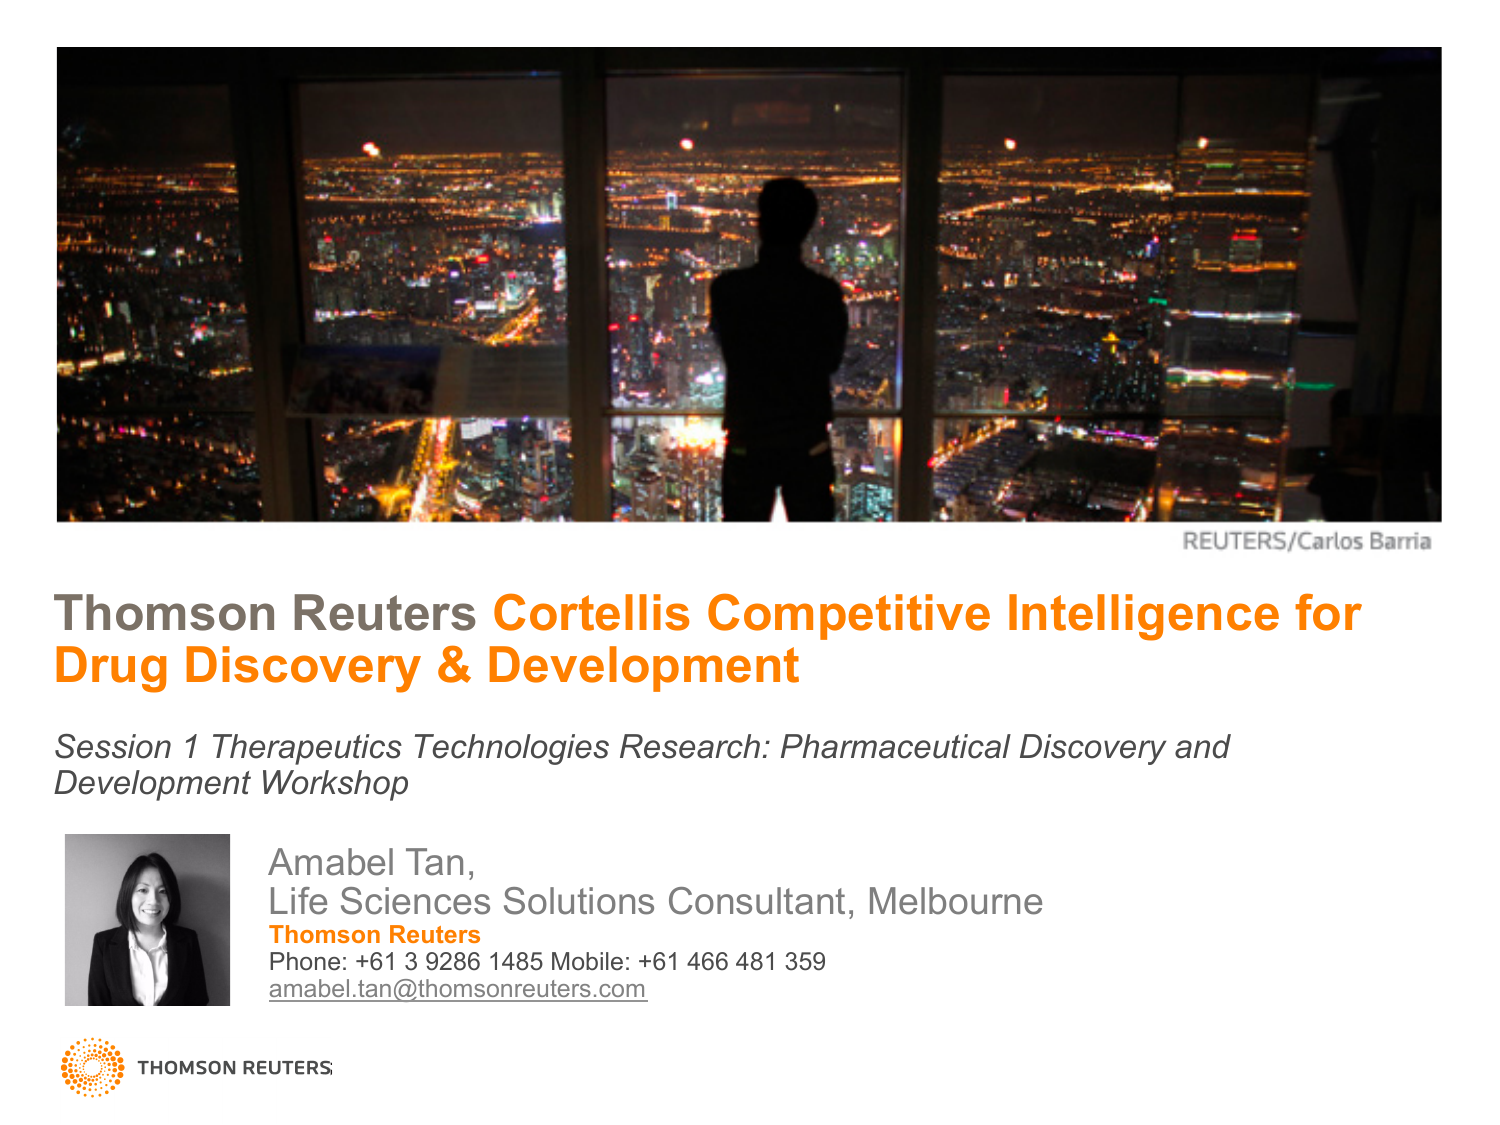 Thomson Reuters Cortellis Competitive Intelligence for